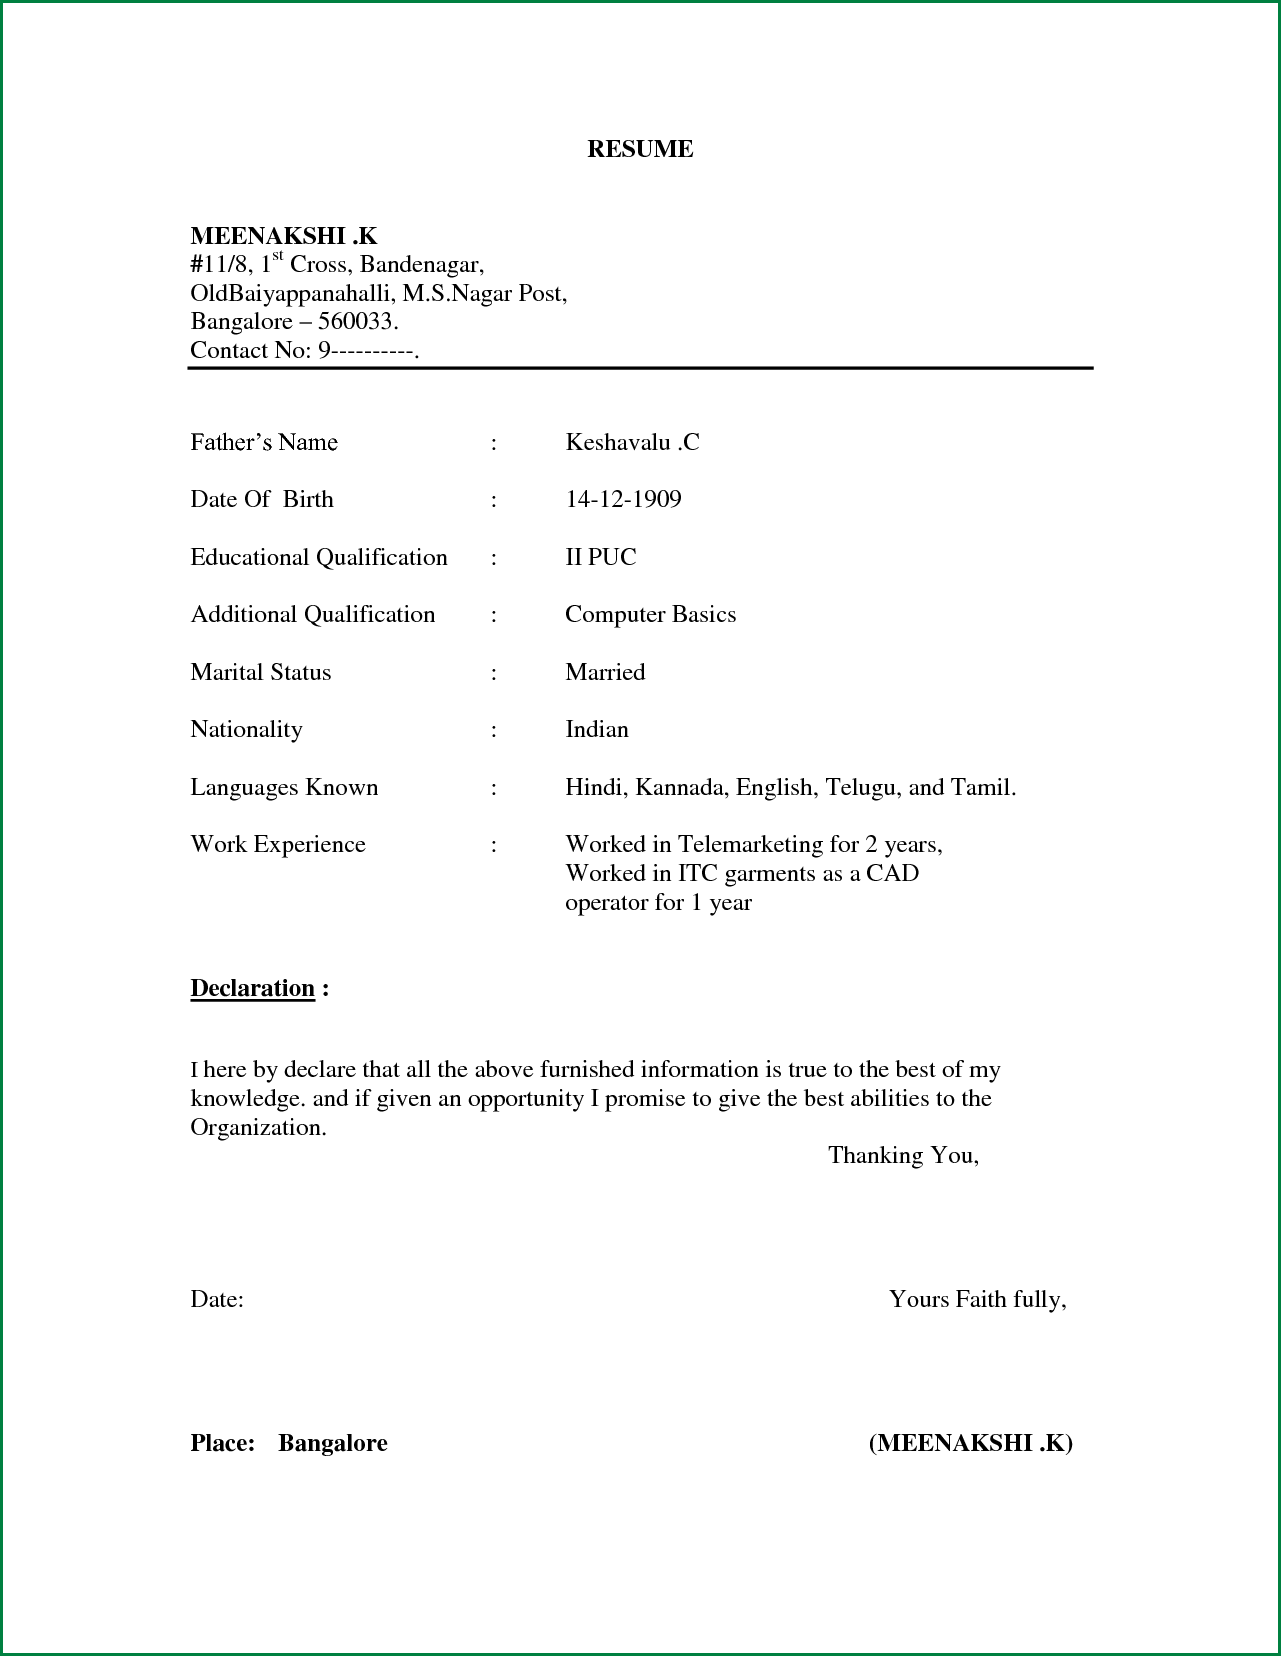 Basic Resume Templates Prepossessing Simple Resume Format For Freshers In Word File137085913